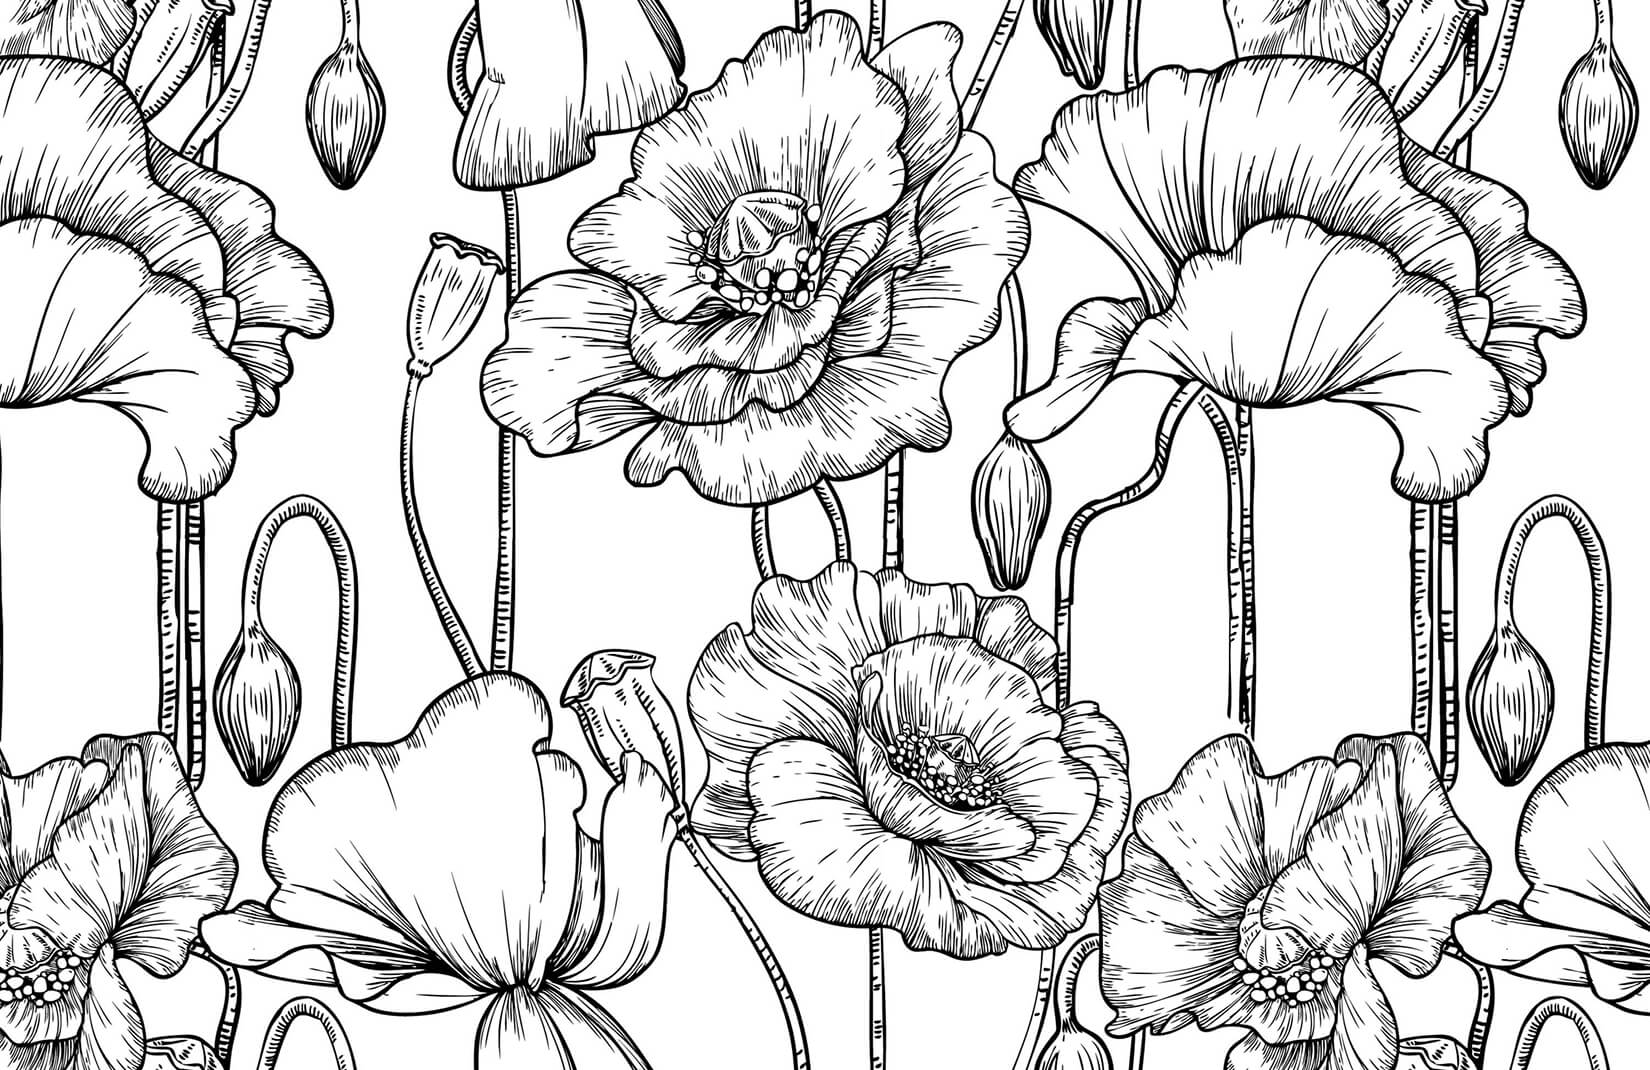 Black And White Illustrated Flowers Wallpaper Mural Murals Wallpaper